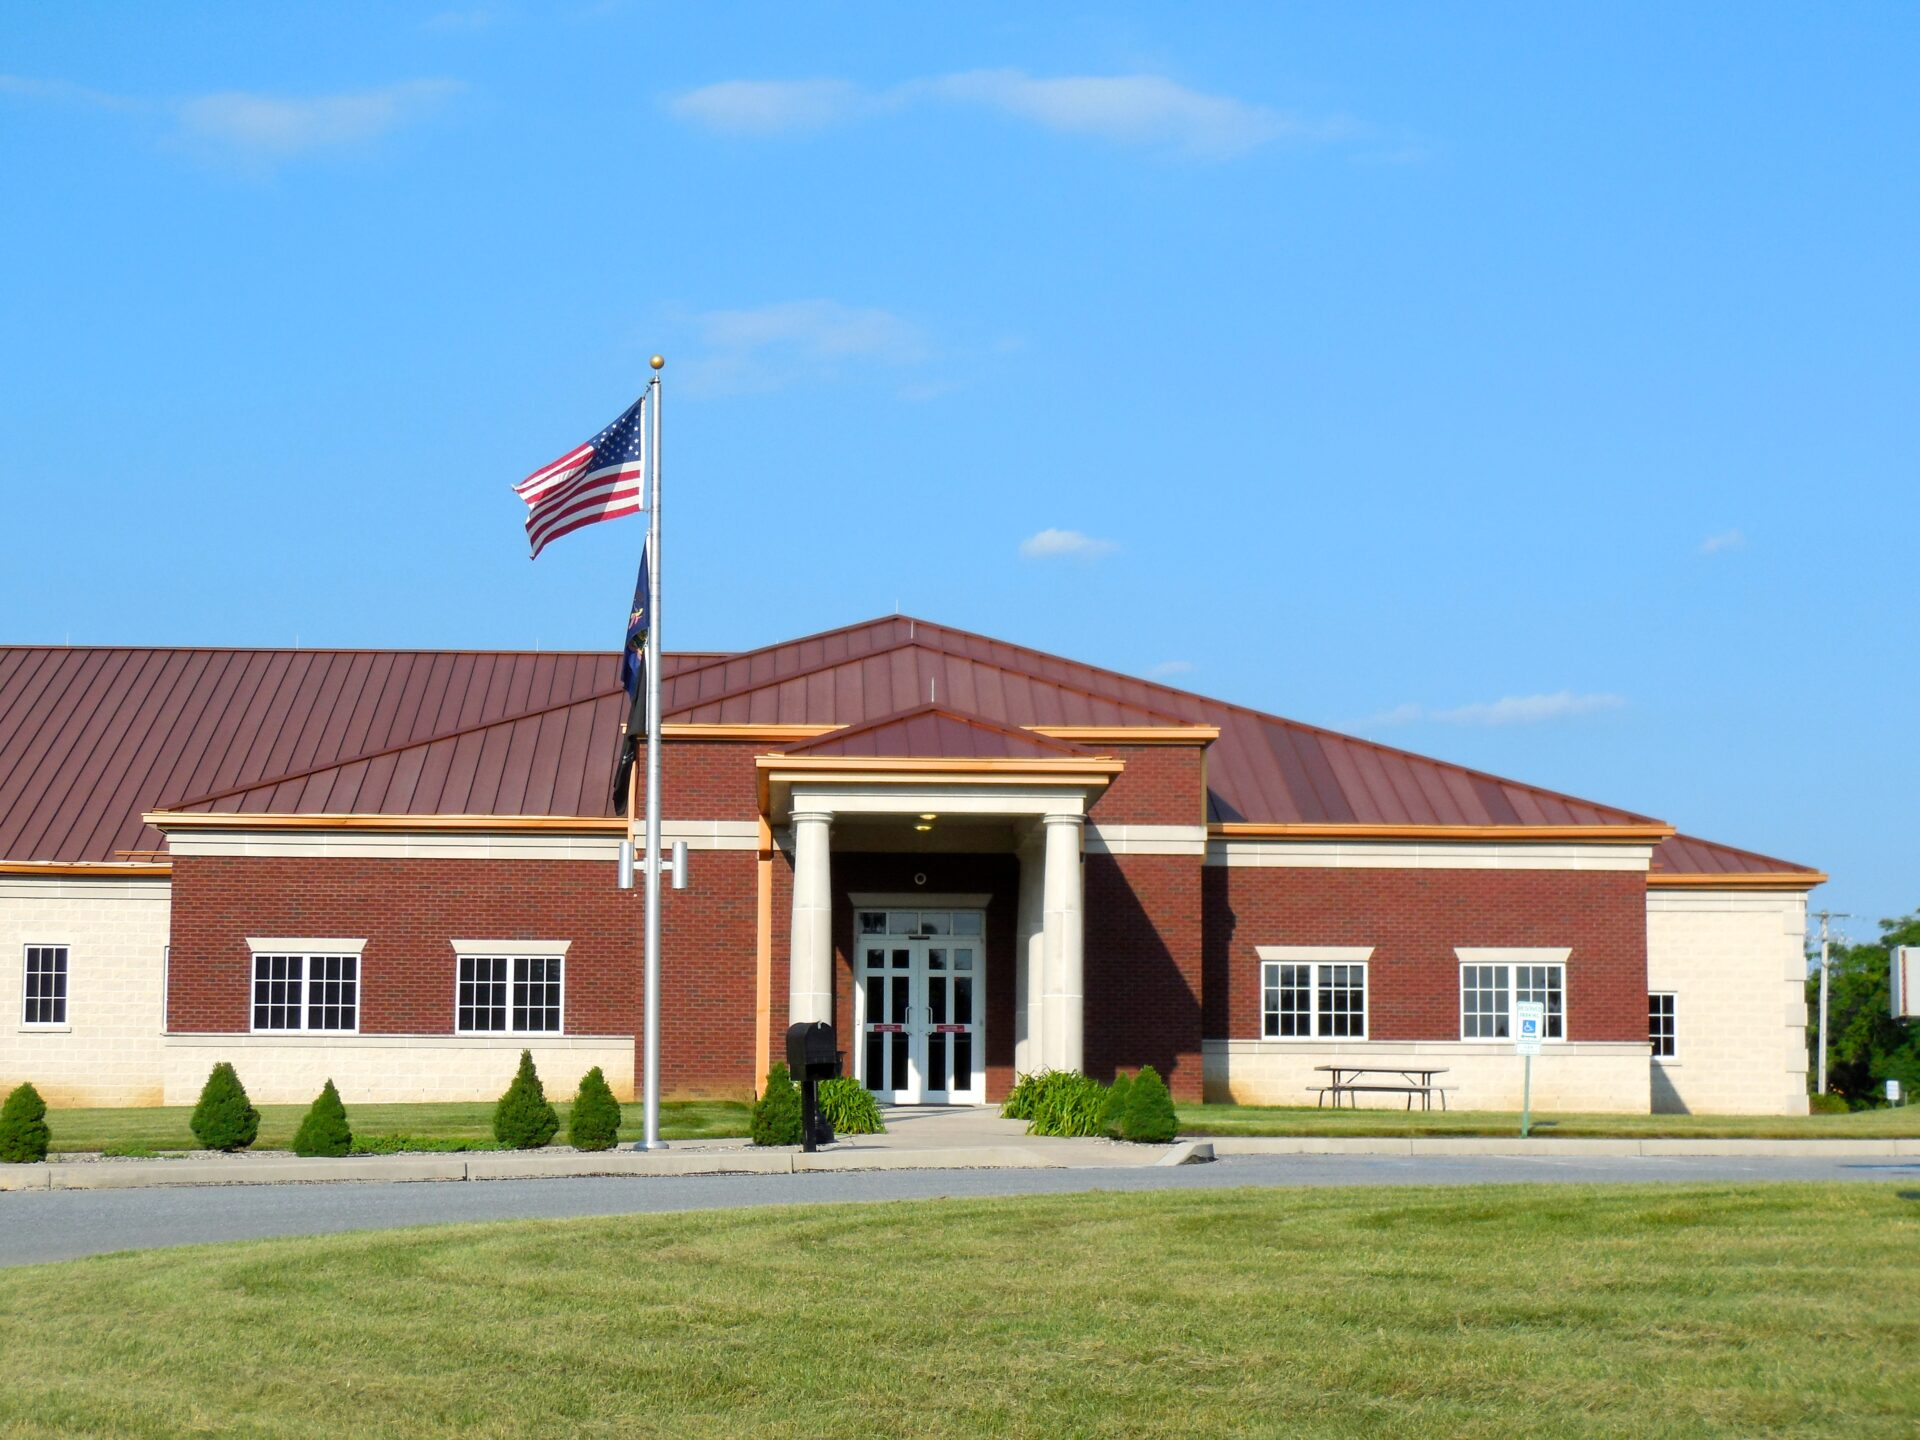 Lancaster County Youth Intervention Center (Source: co.lancaster.pa.us)